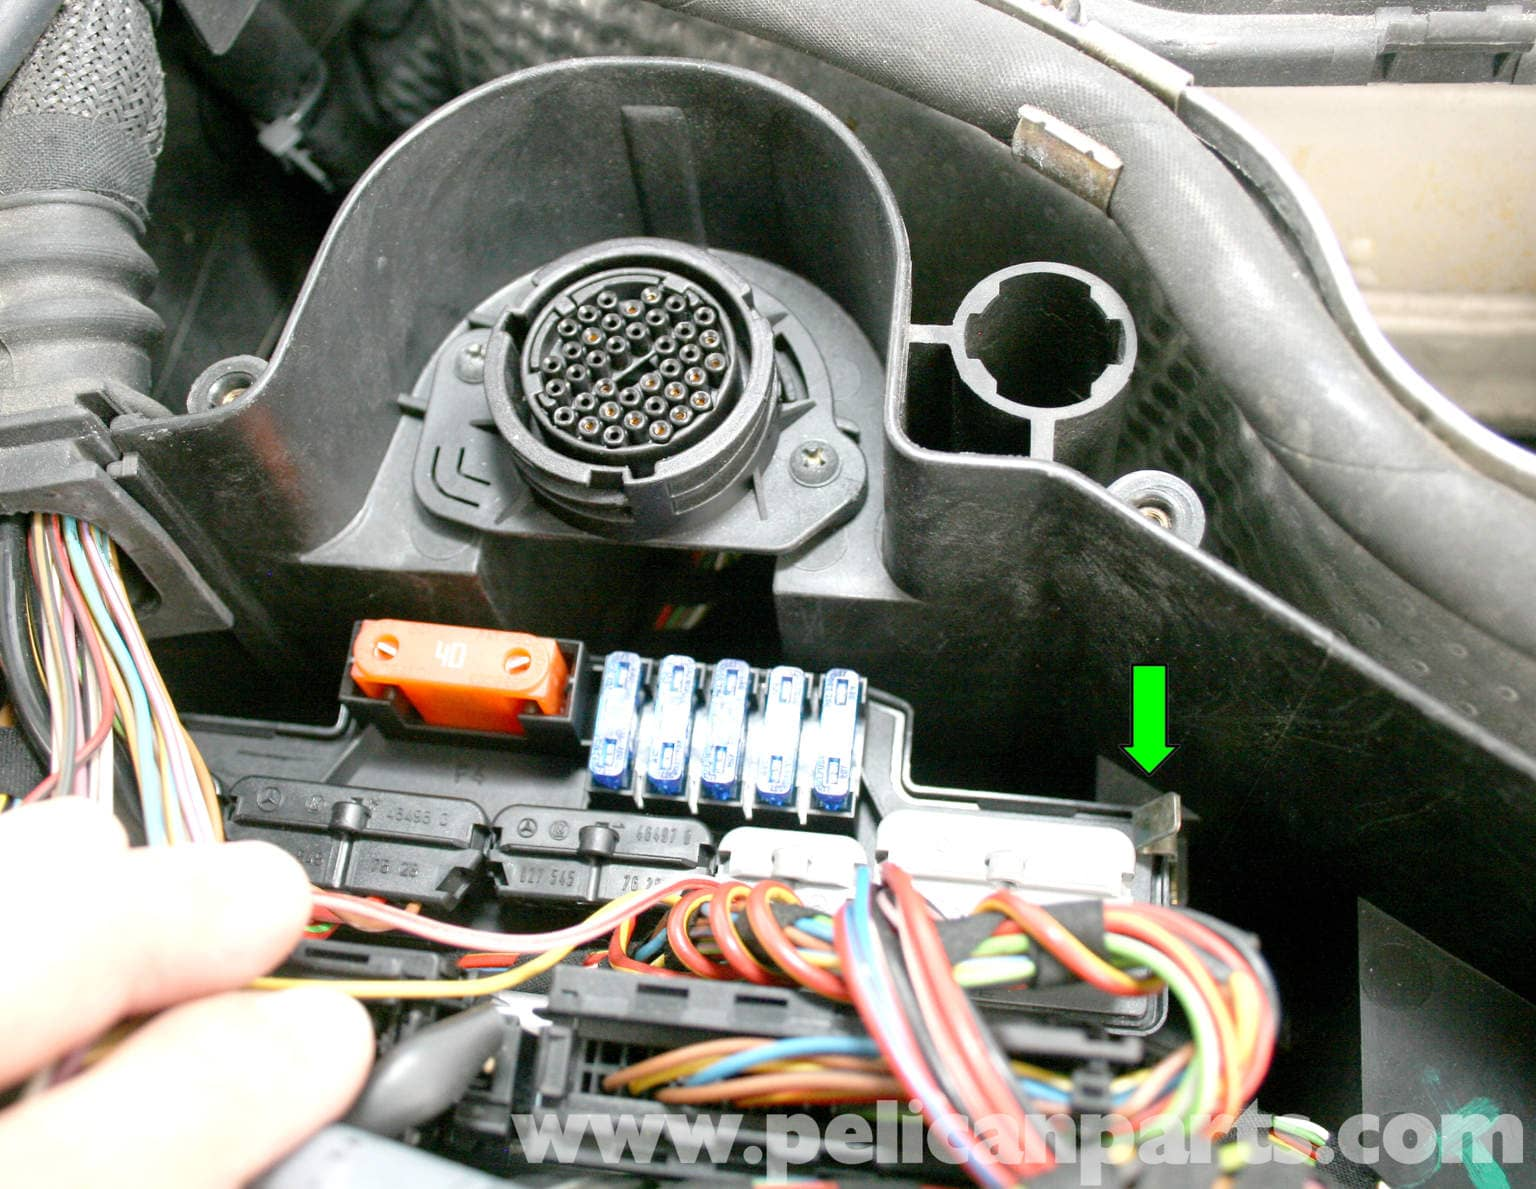 Mercedes Slk 230 Fuse Box Diagram Wiring Library 2003 Benz Sl500 Abs Control Module Replacement 1998 2004 Large Image